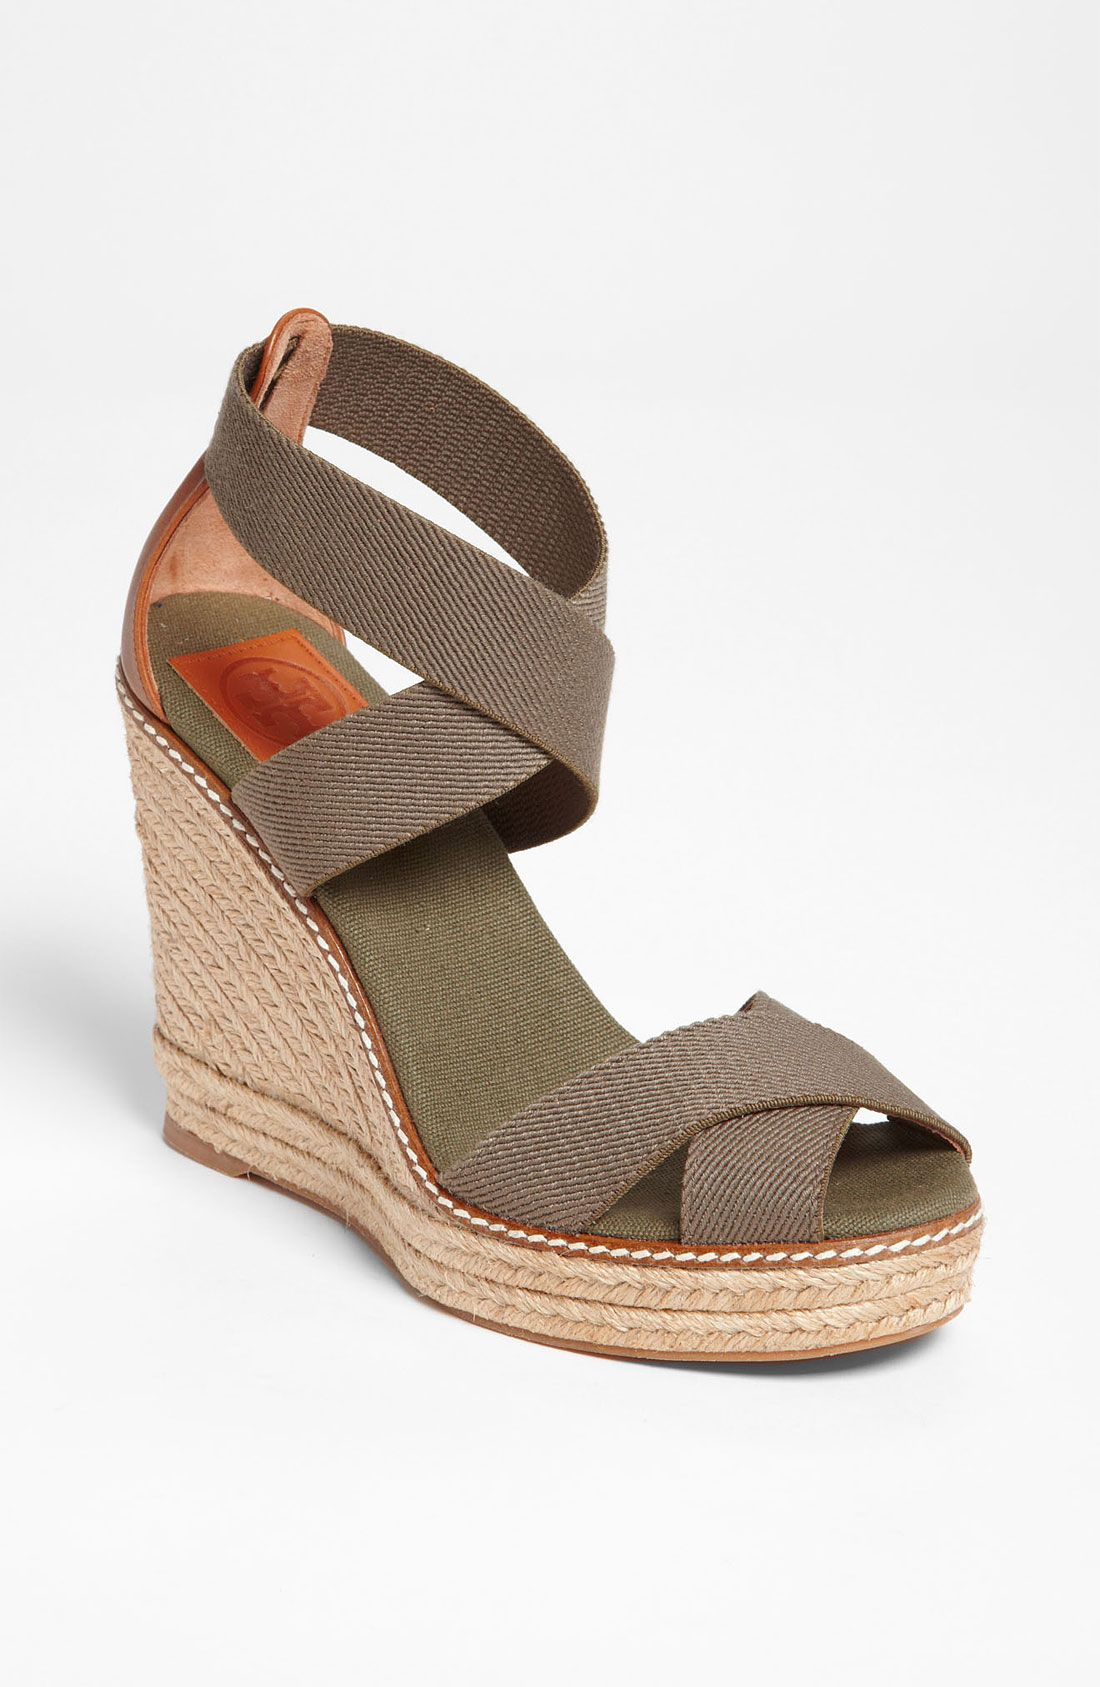 5ec622cabb Tory Burch Adonis Wedge Espadrille in Green (olive almond) | Lyst ...